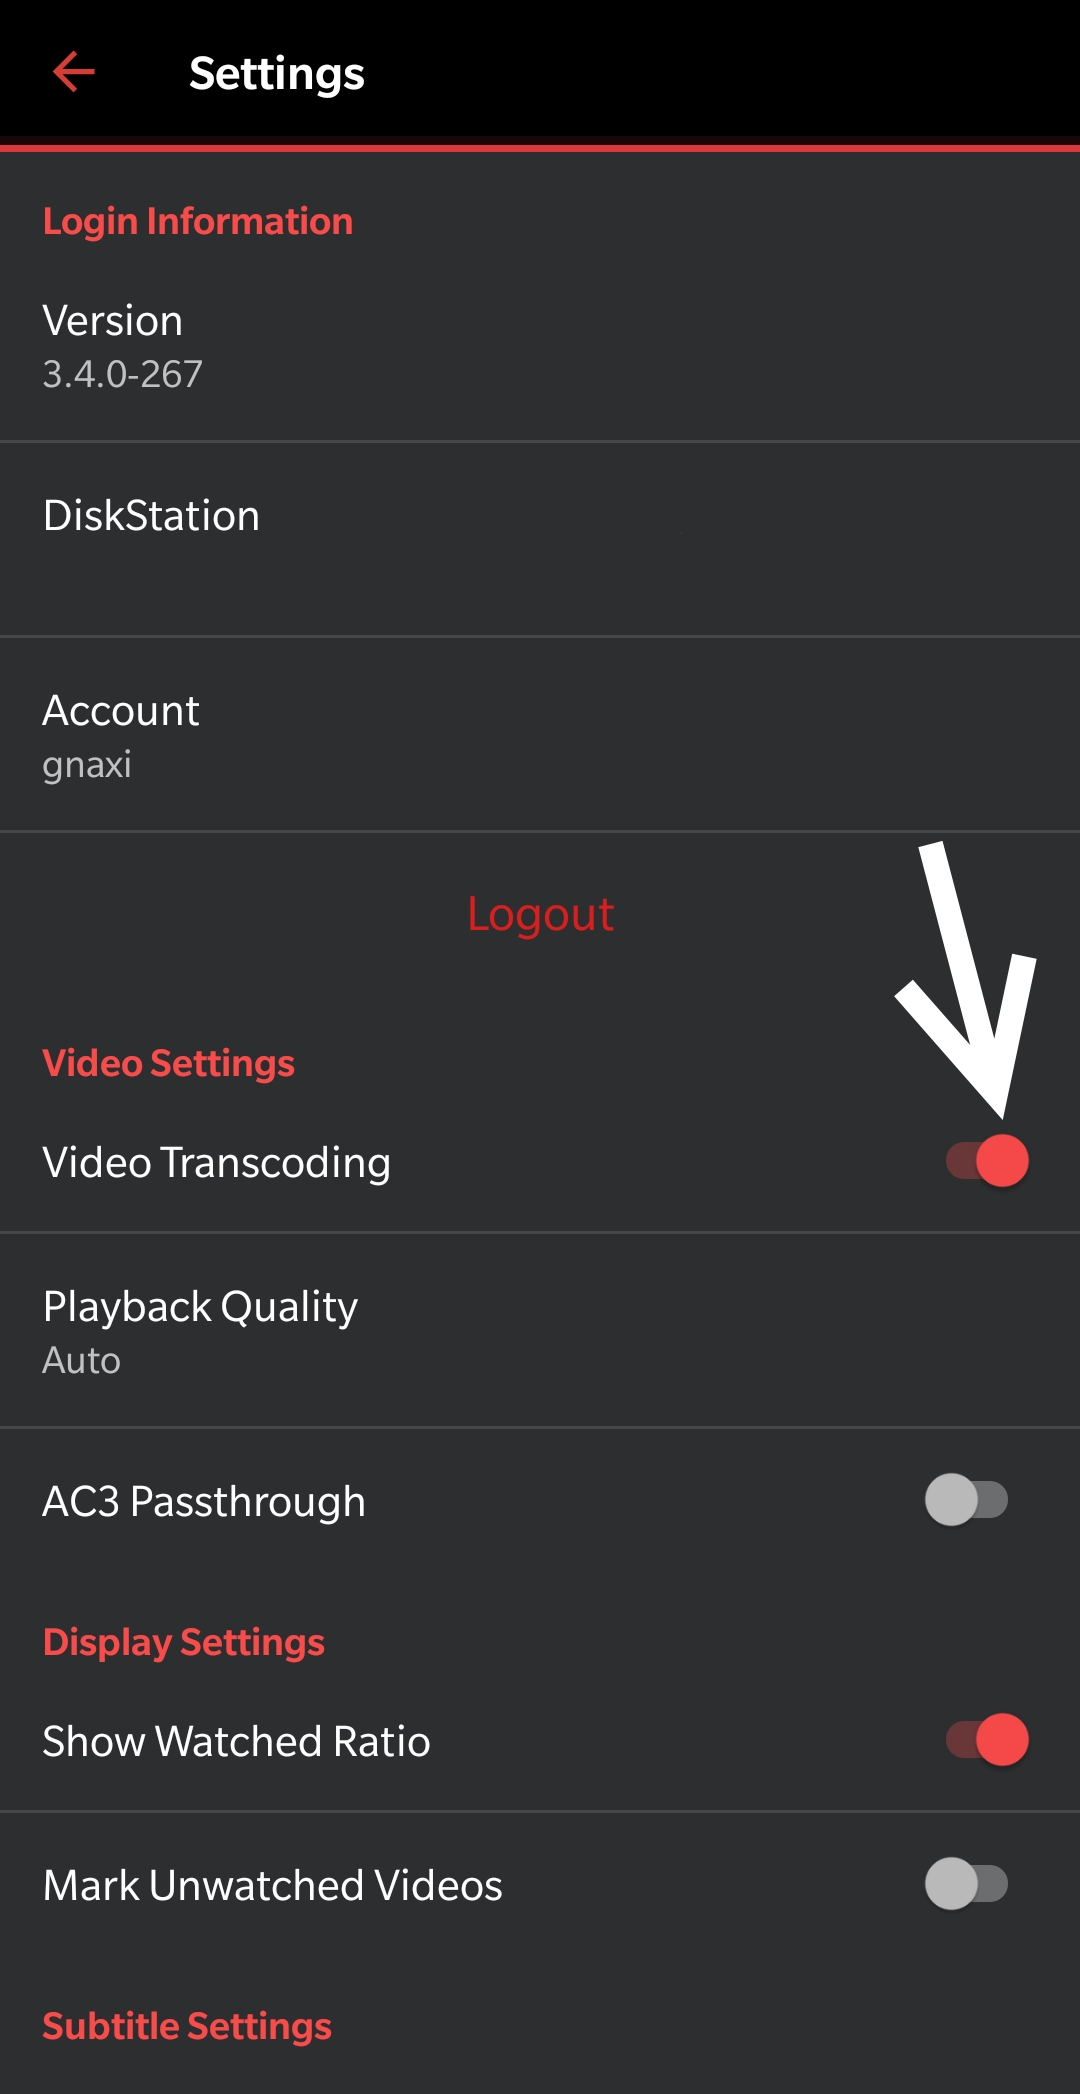 Disable Video Transcoding in your Synology DS video app